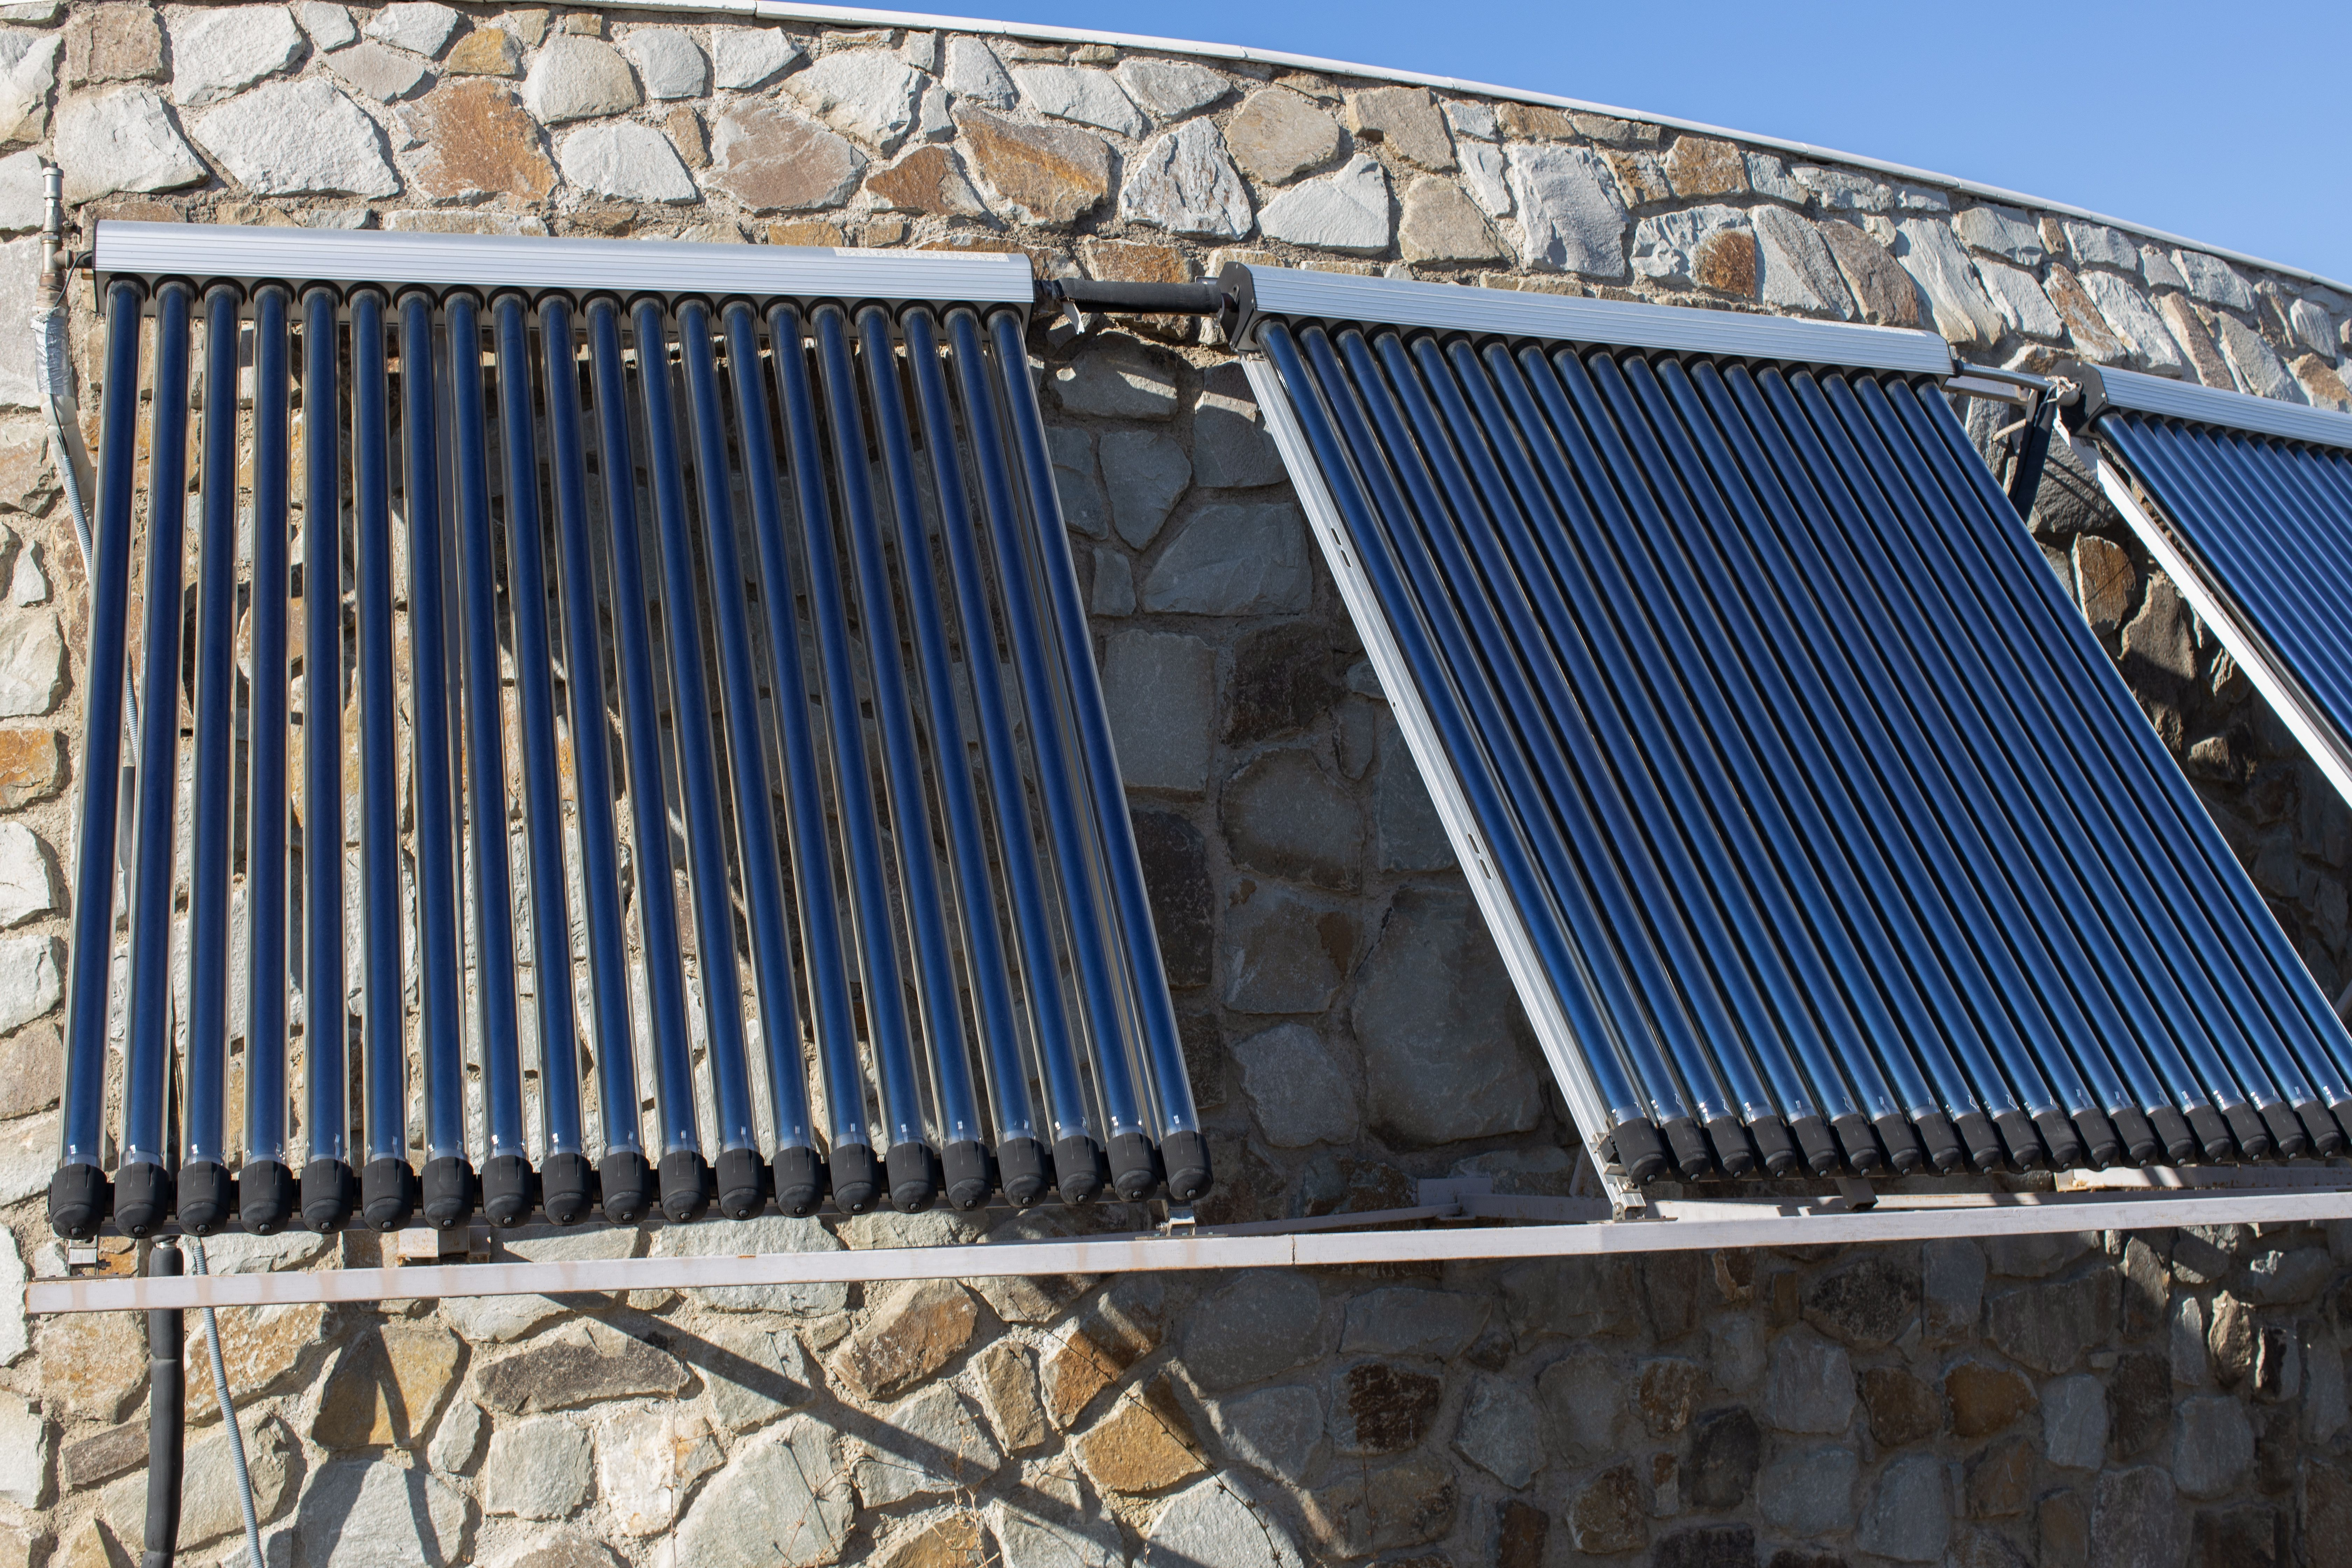 Solar water heating system installed on the roof of a house